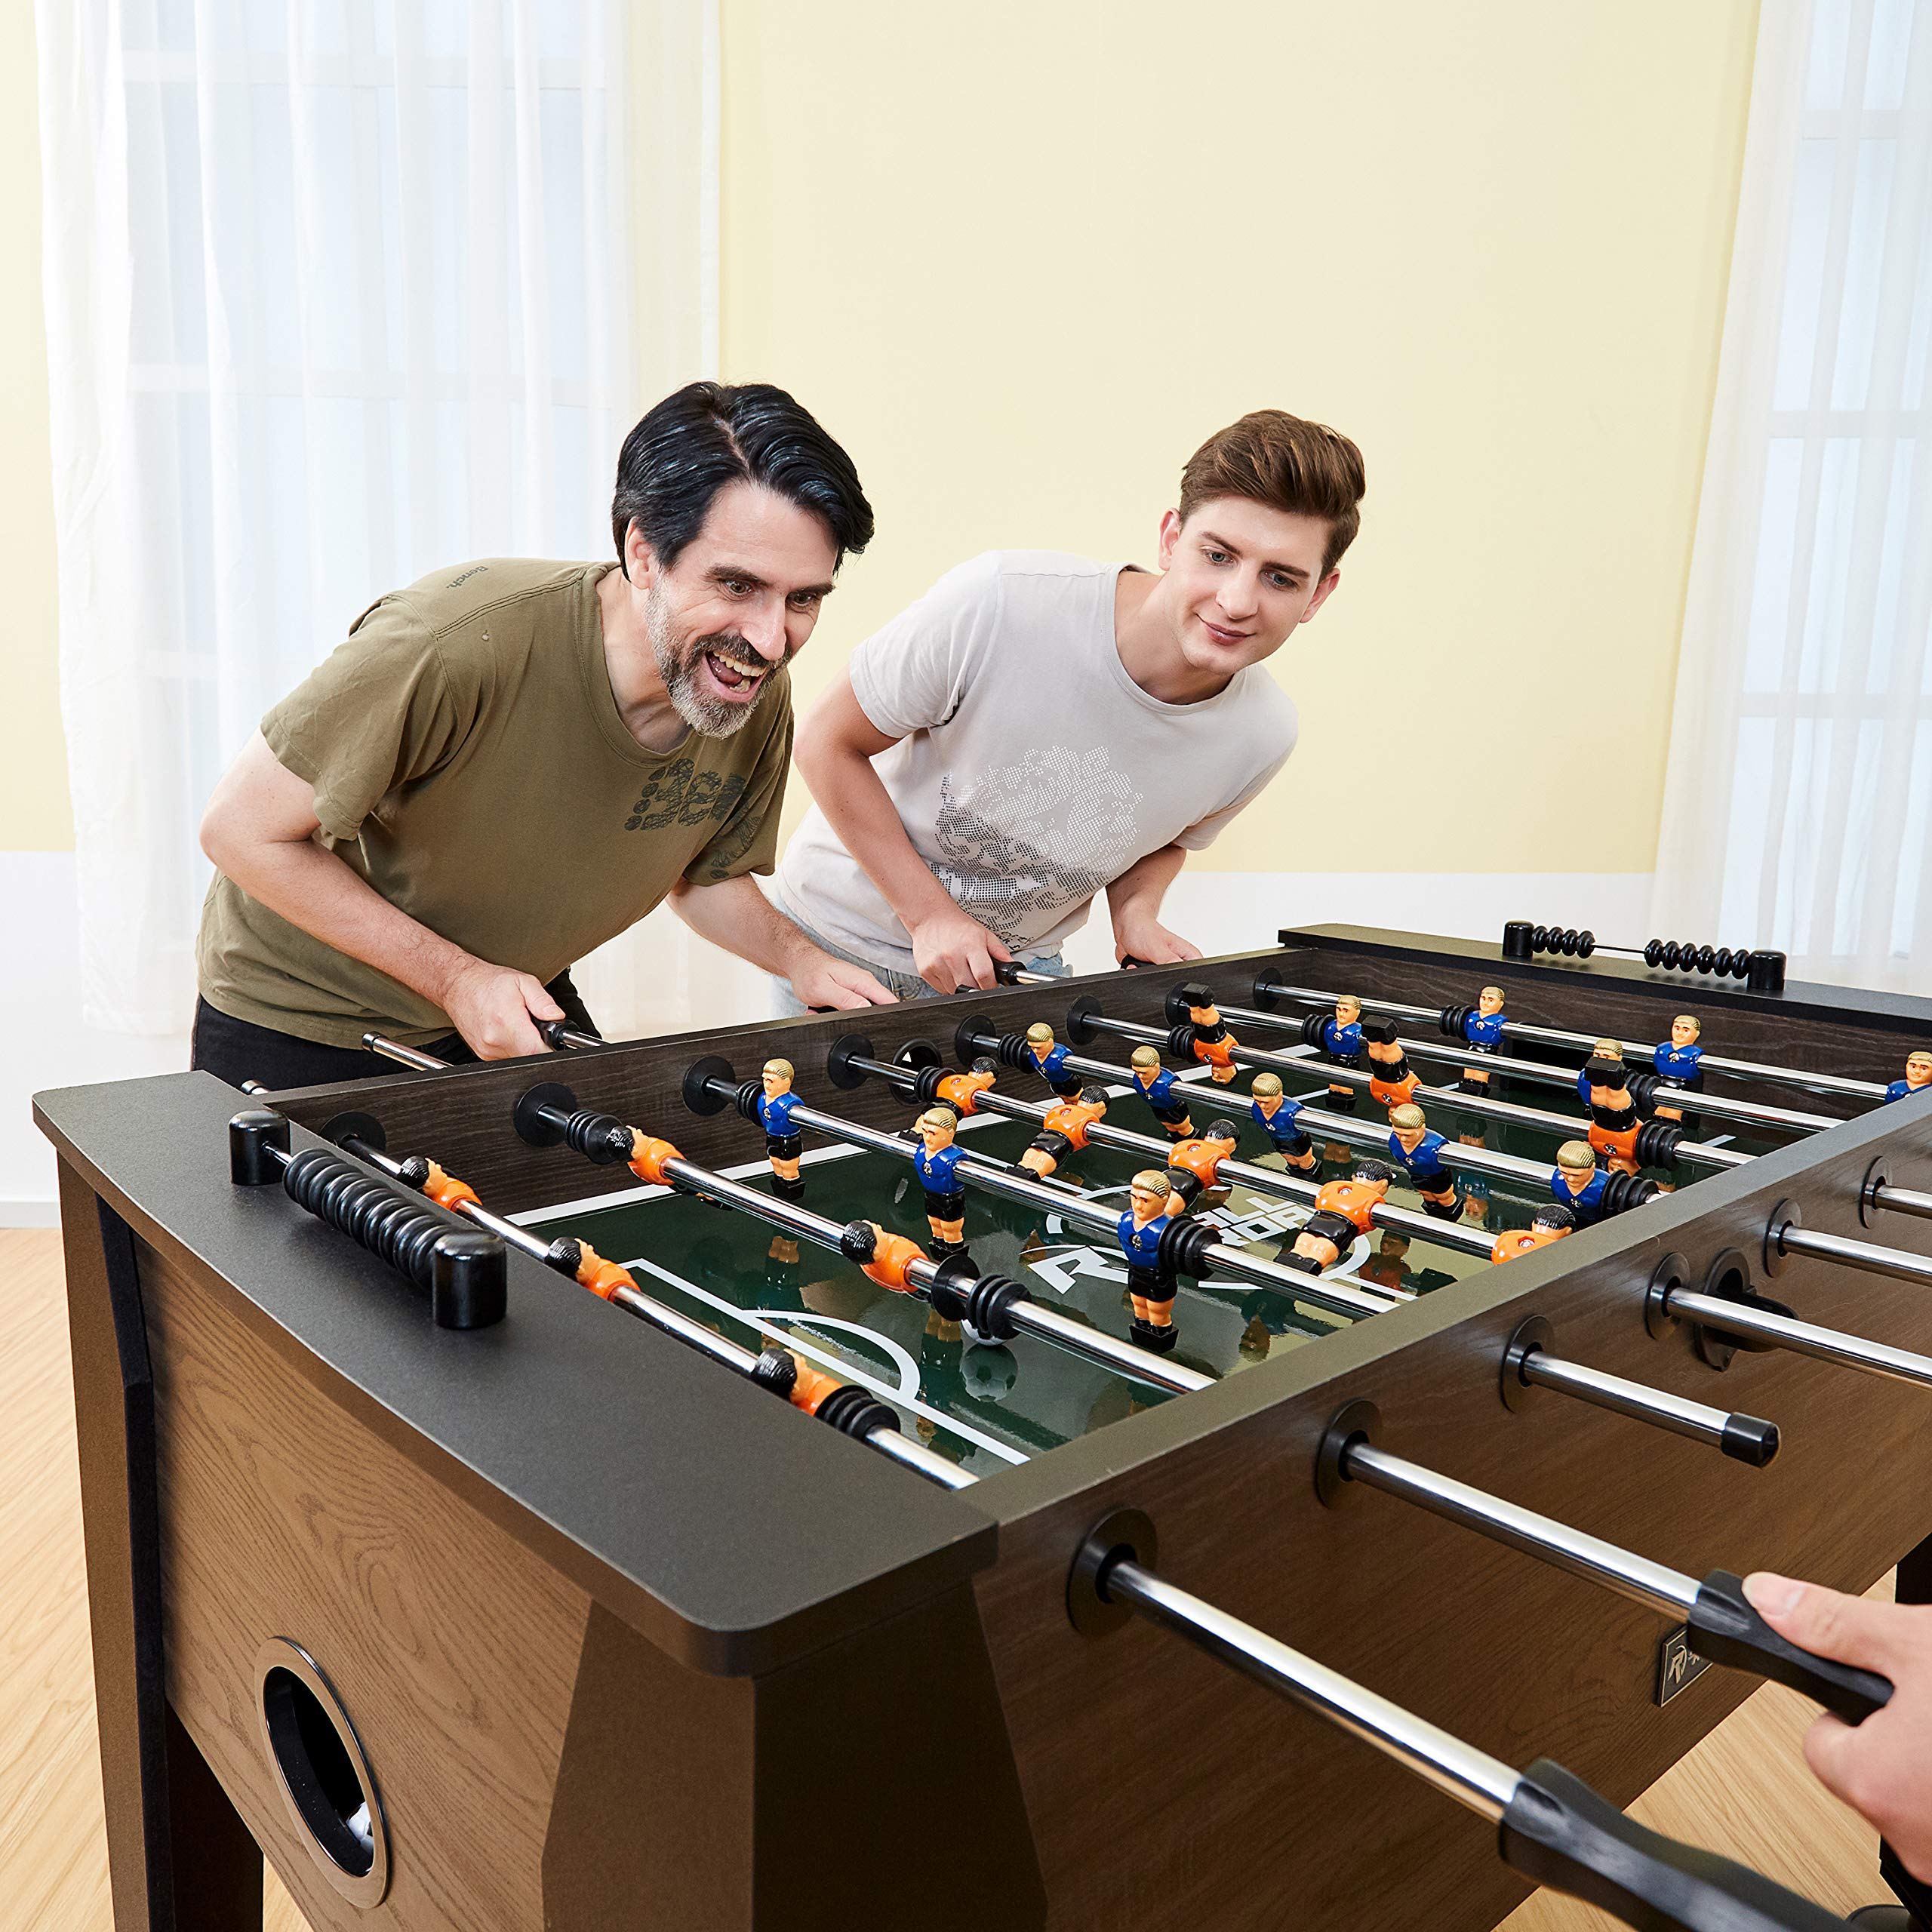 """Rally and Roar Foosball Table Game – 56"""" Standard Size Fun, Multi Person Table Soccer Adults, Kids - Recreational Foosball Games Game Rooms, Arcades, Bars, Parties, Family Night by Rally and Roar (Image #9)"""